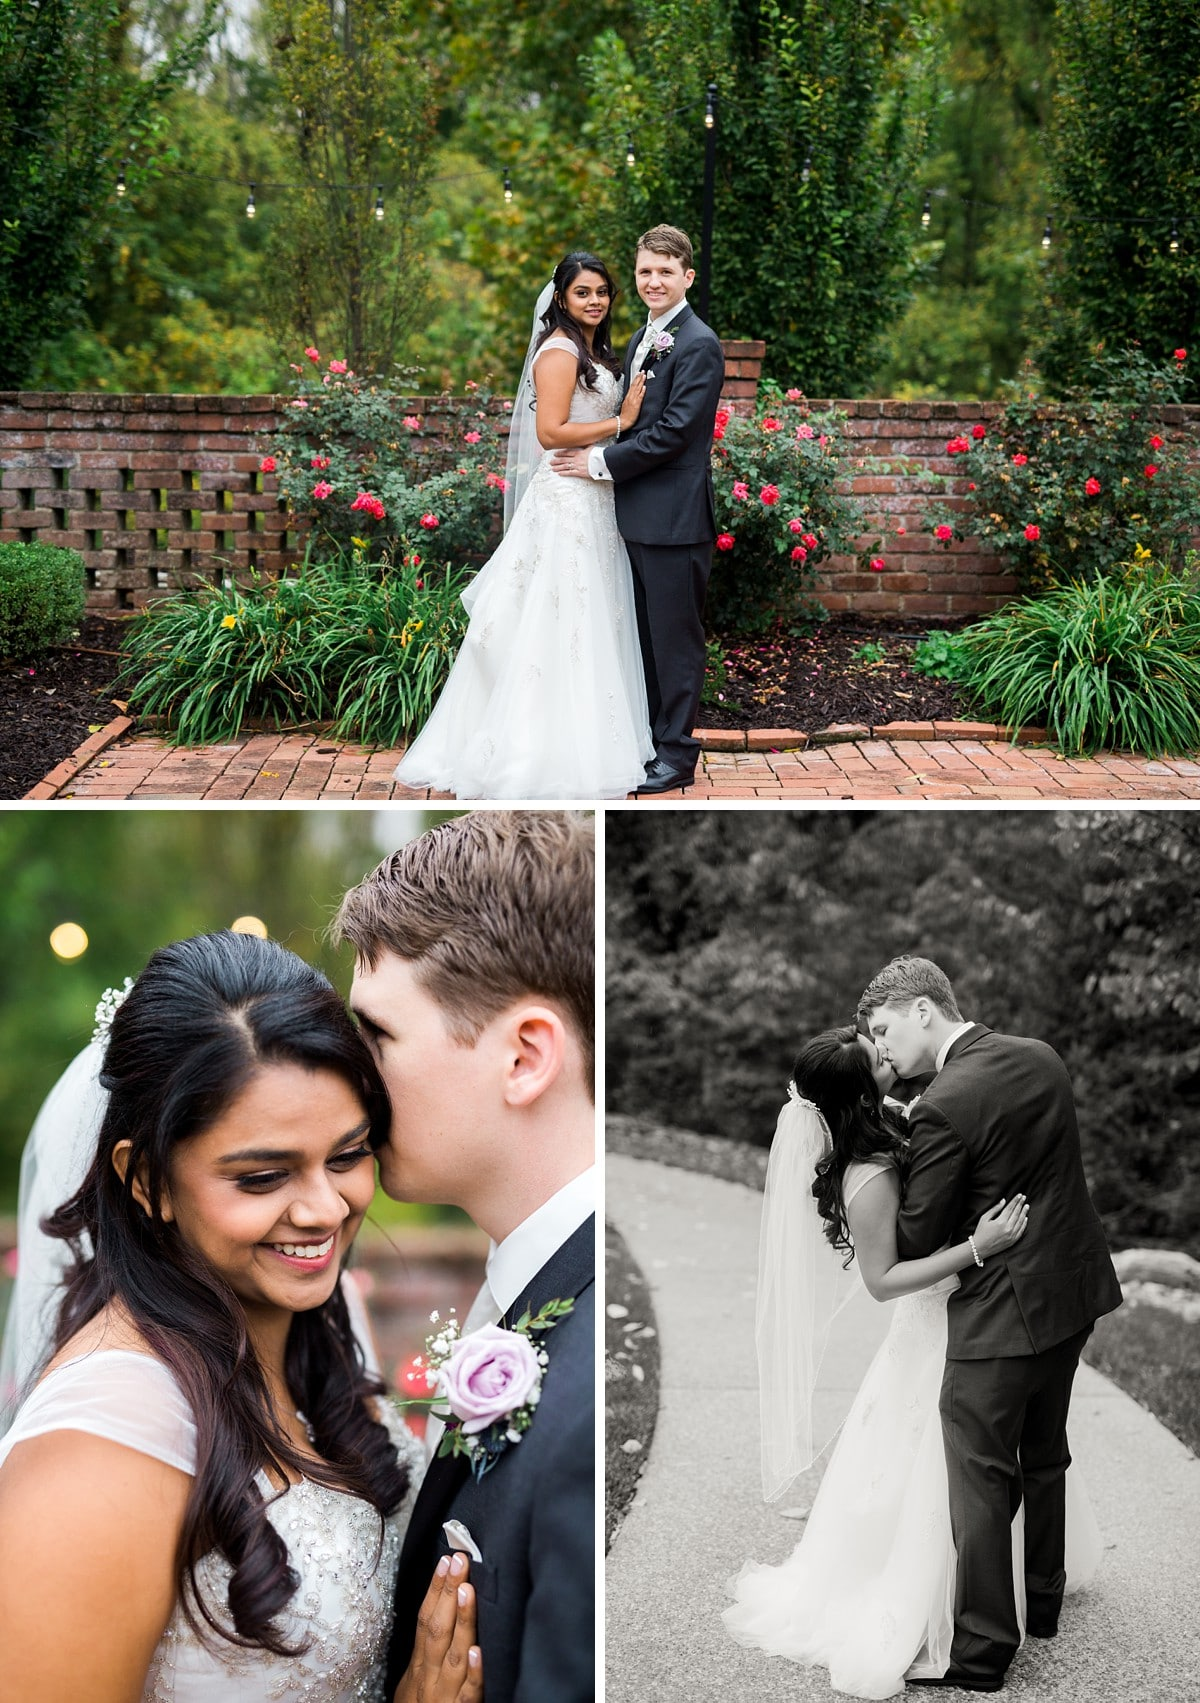 Inns at St. Albans: Old Barn Inn Wedding - Rinita and Jonathan | Zoe ...